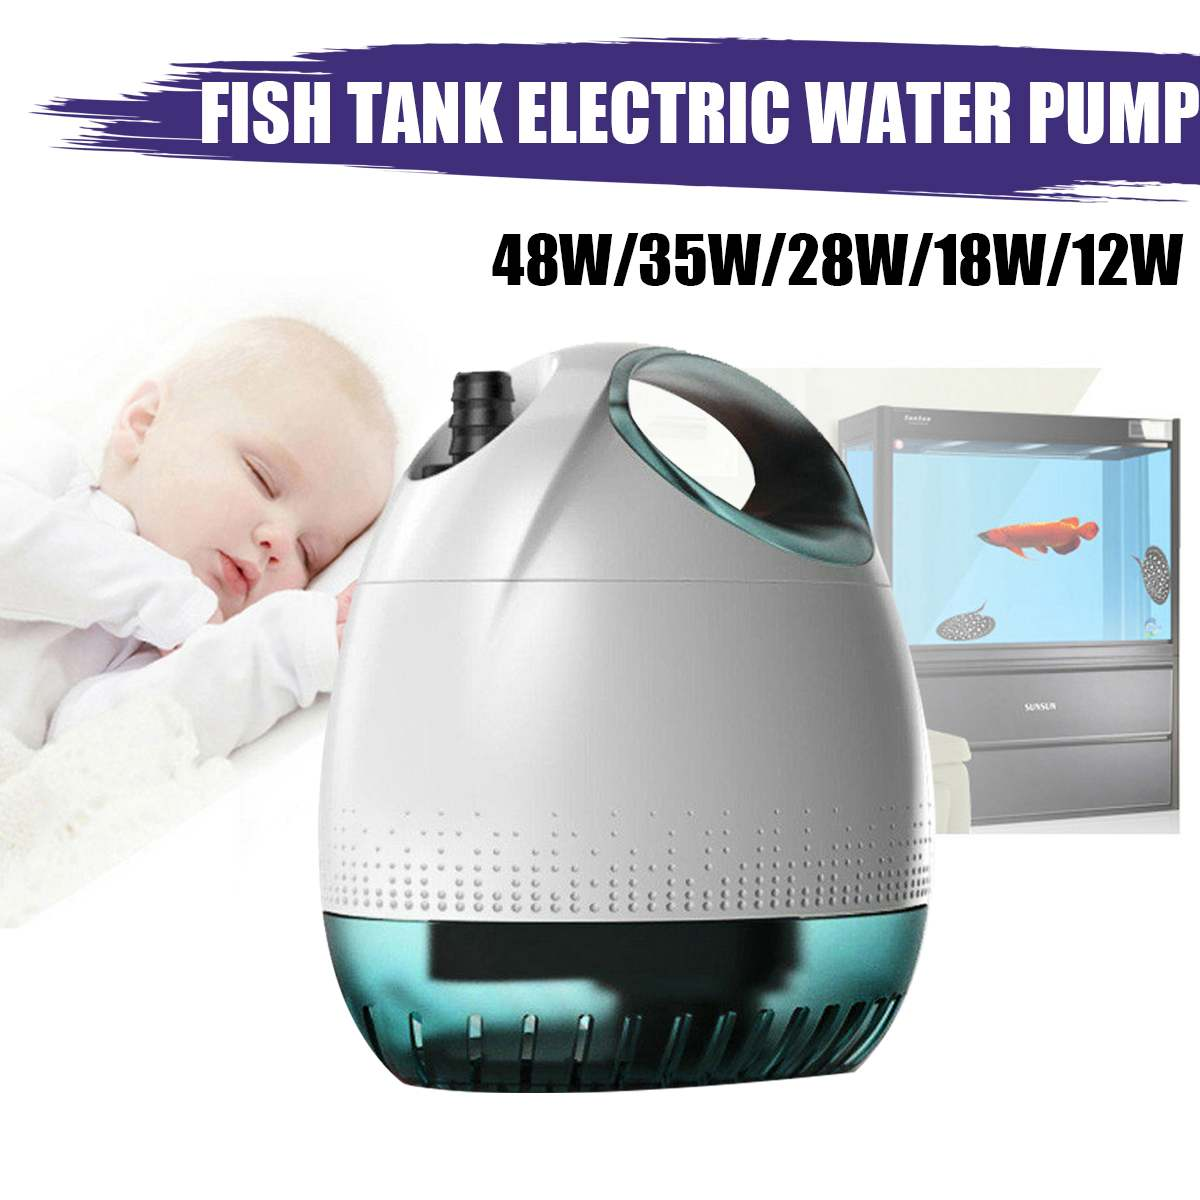 48W 2500H/L Water Pump Waterproof Submersible Ultra-quiet Bottom Suction Pump Fish Tank Aquarium Pond Fountain Feature Pump48W 2500H/L Water Pump Waterproof Submersible Ultra-quiet Bottom Suction Pump Fish Tank Aquarium Pond Fountain Feature Pump